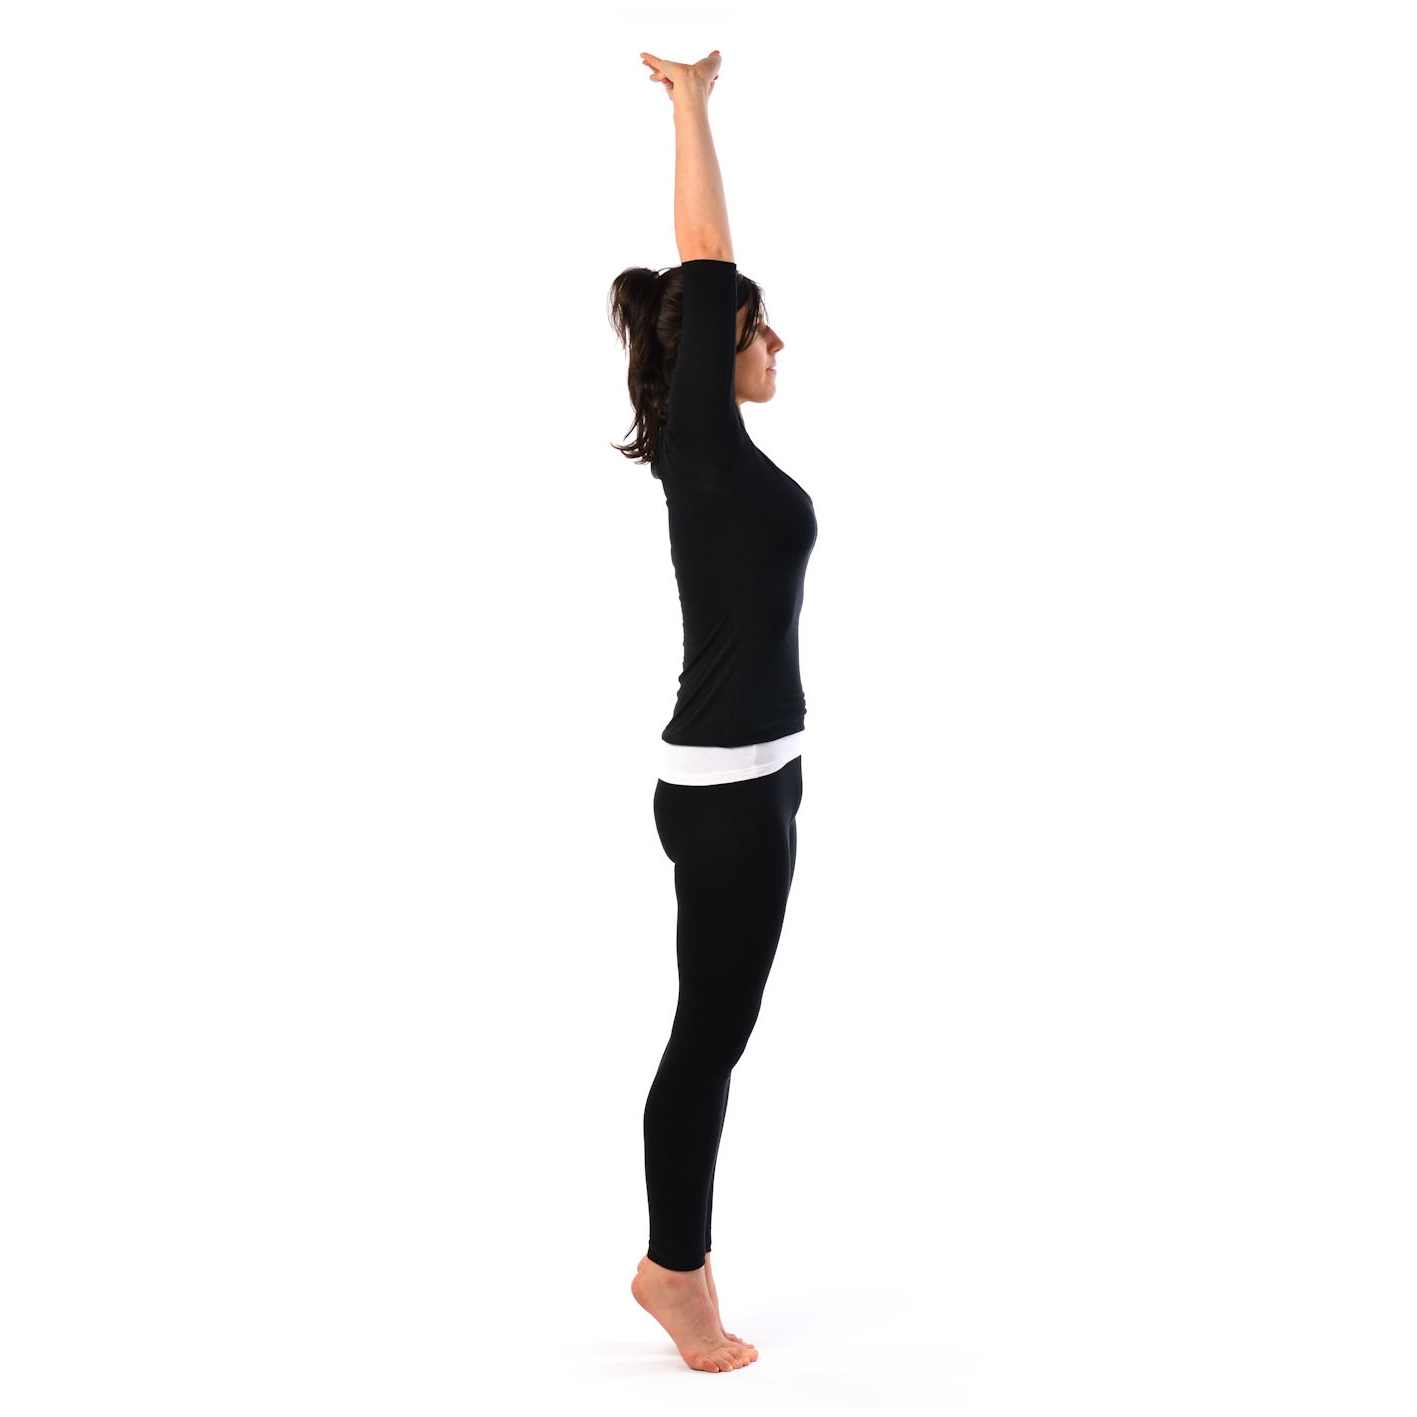 9 Basic But Important Yoga Poses And Their Benefits   The ...